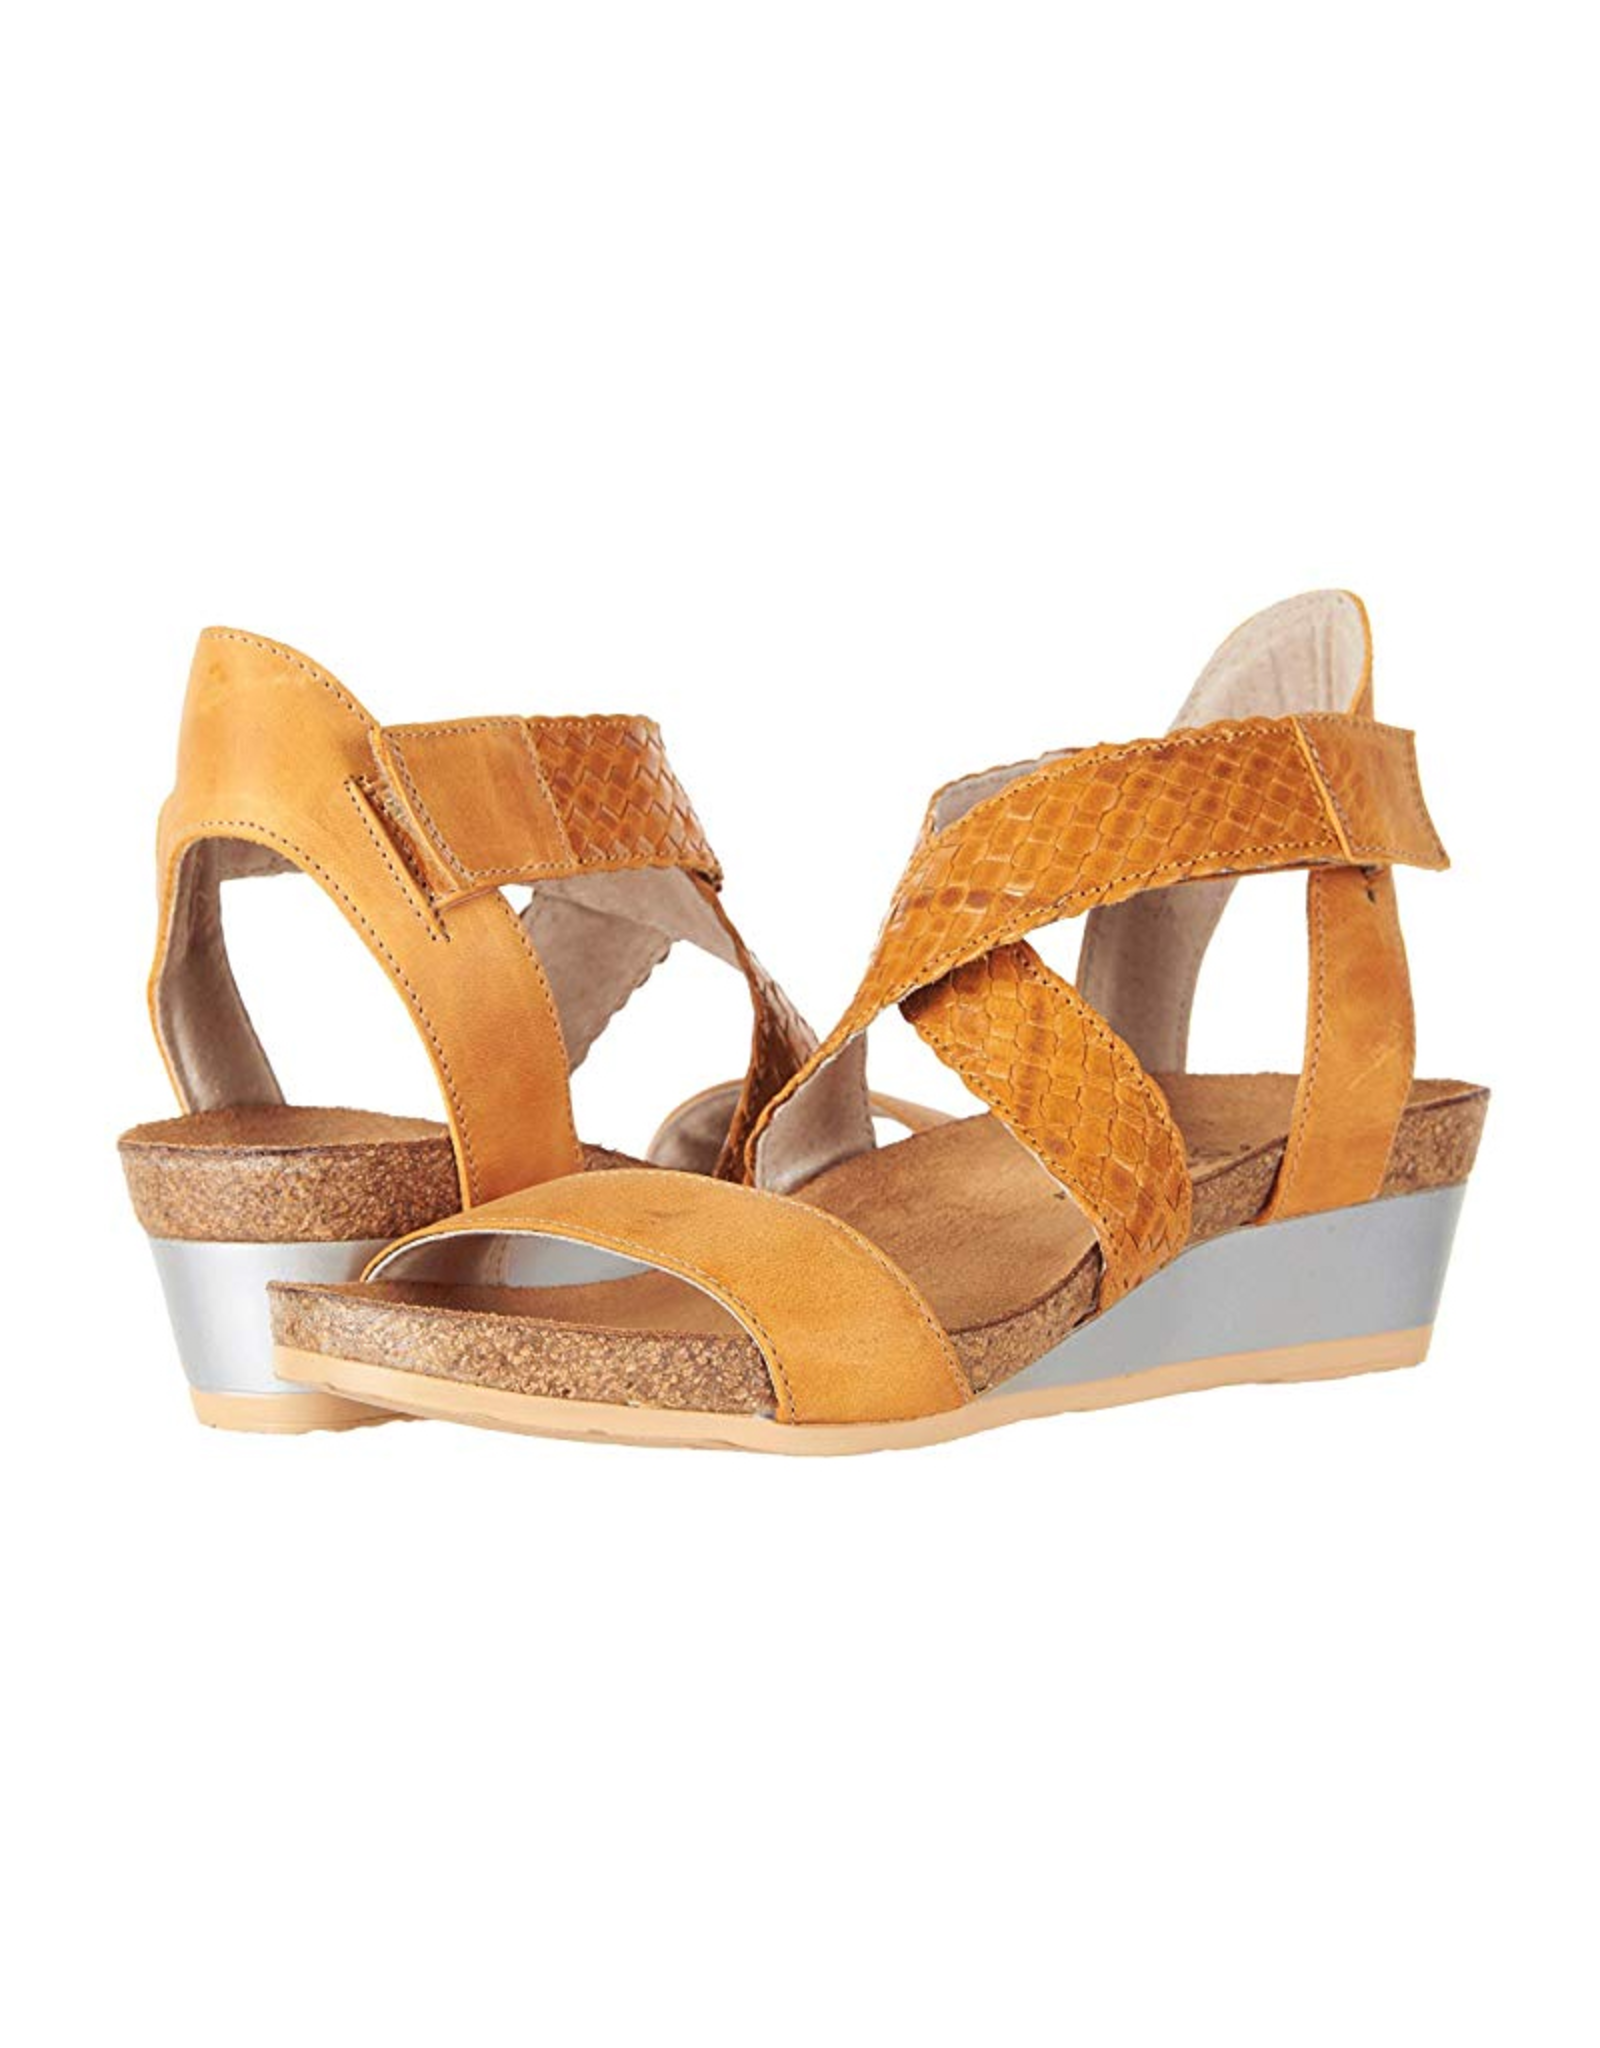 Naot/Yaleet Naot Cupid Strappy Wedge